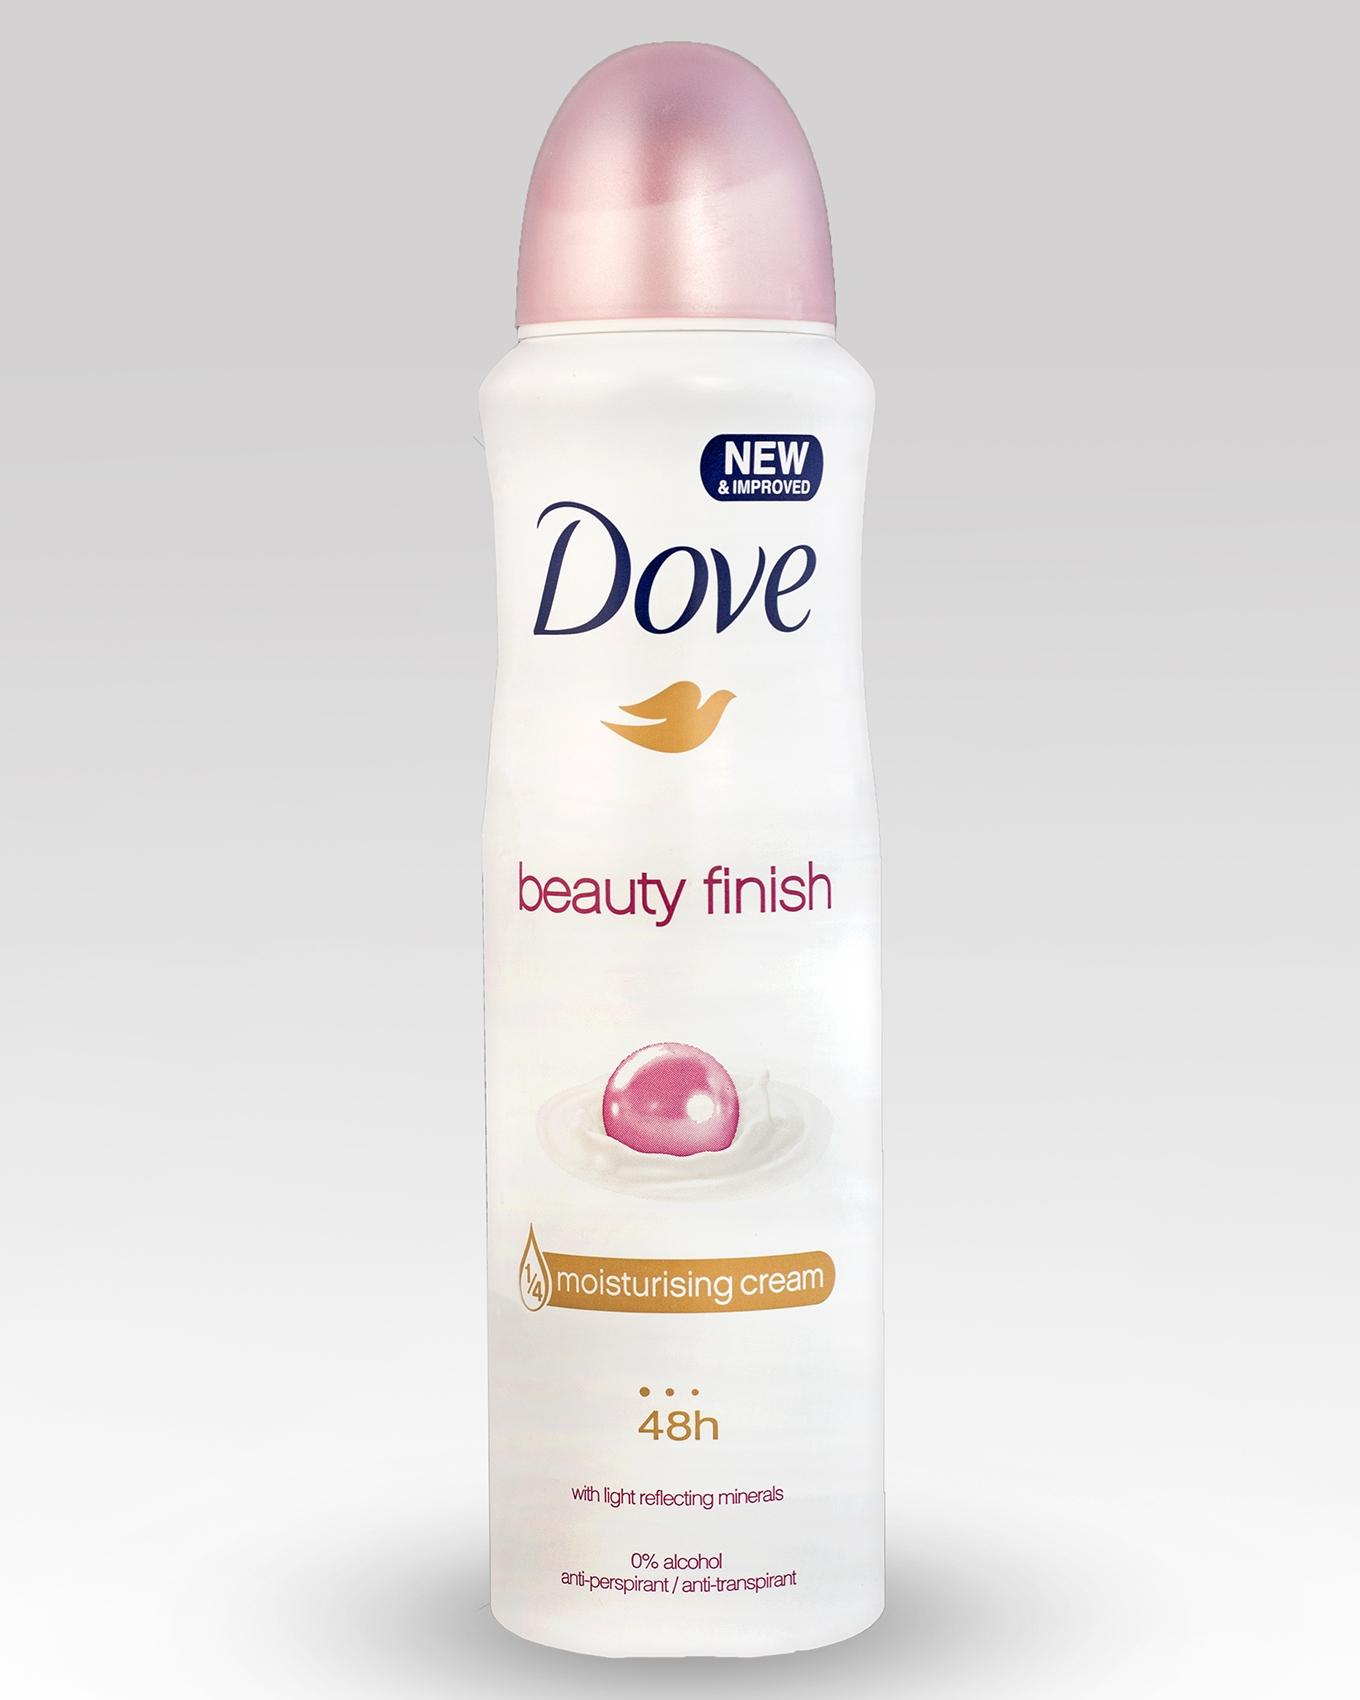 Doveacicc Buy At Best Price In Srilanka Dove Body Wash Gofresh Revive Pump 550 Ml Beauty Finish With Light Reflecting Minerals 250ml